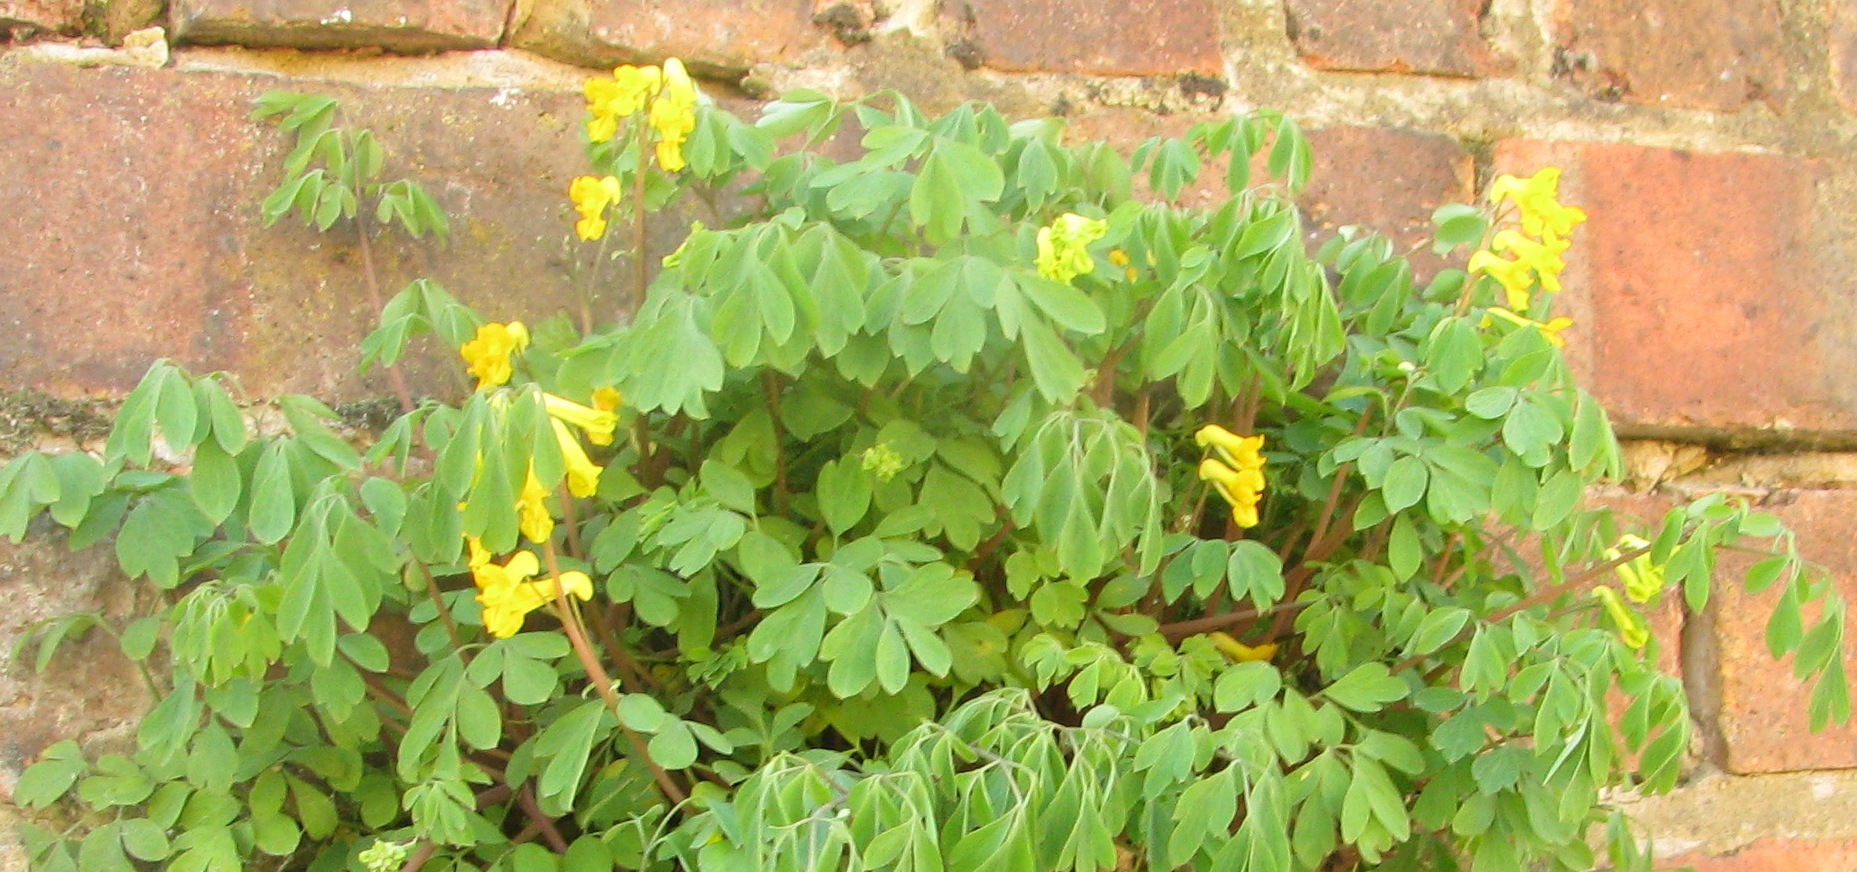 The beauty of weeds bug woman adventures in london the long bell shaped flowers of the yellow corydalis mightylinksfo